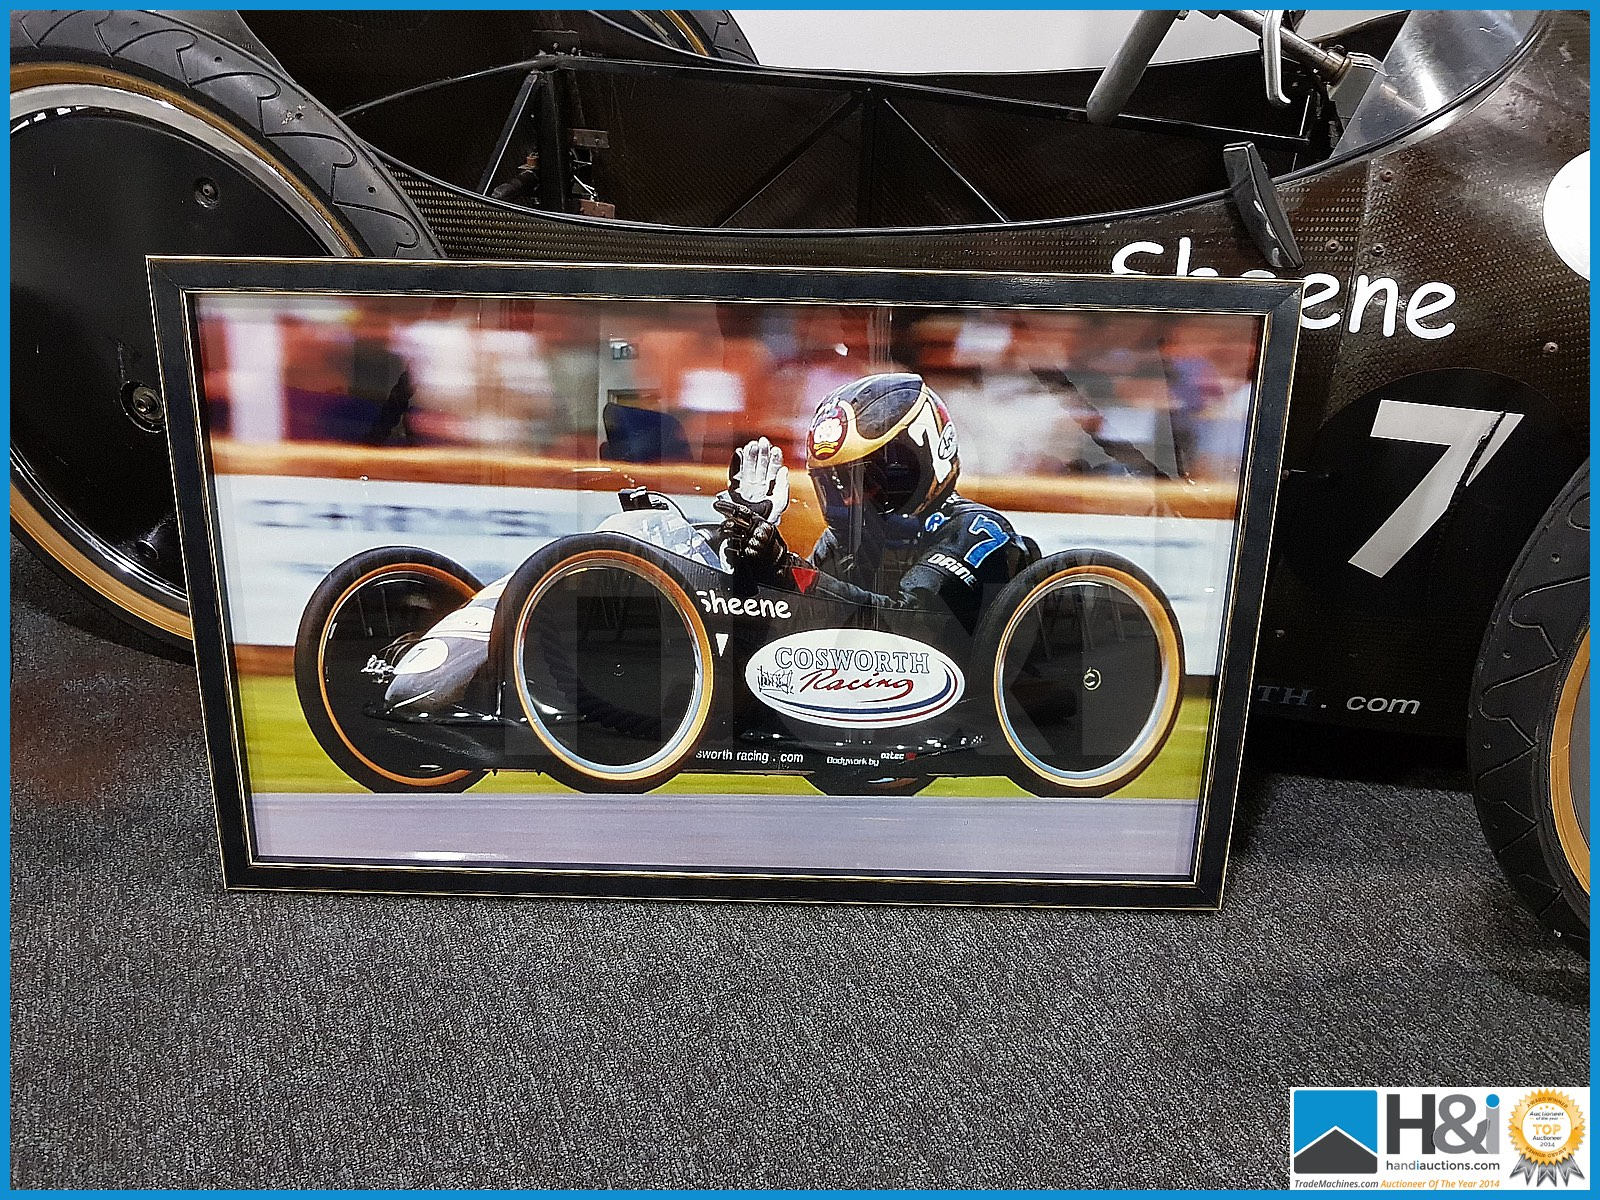 Lot 50 - Barry Sheene carbon fibre racer. The down hill racer was designed and built by a team from Cosworth